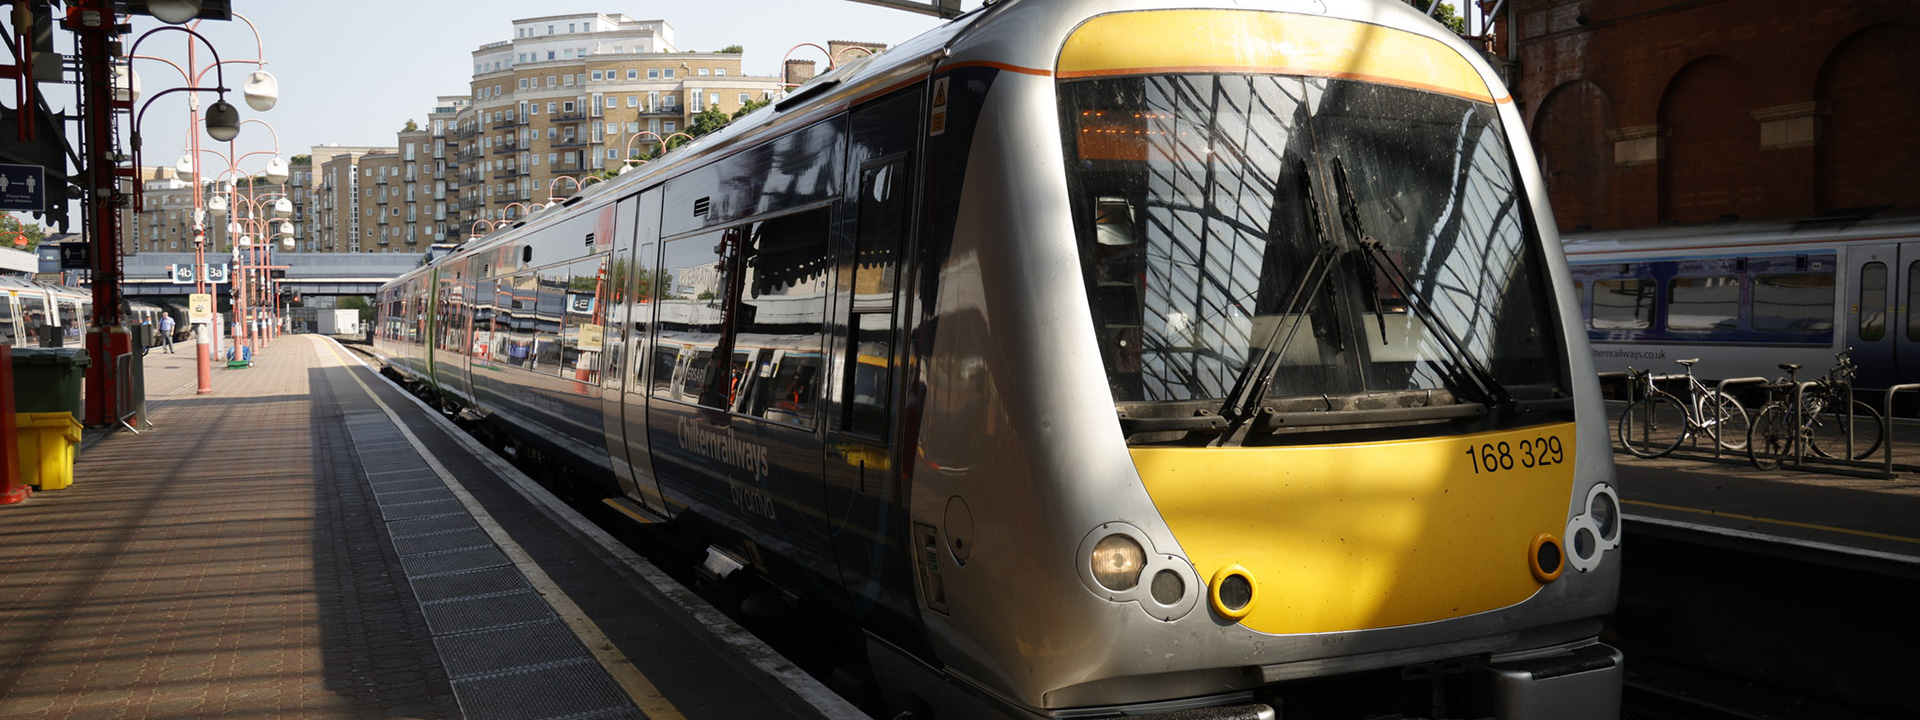 HybridFLEX - Britain's first hybrid battery-diesel train is launched